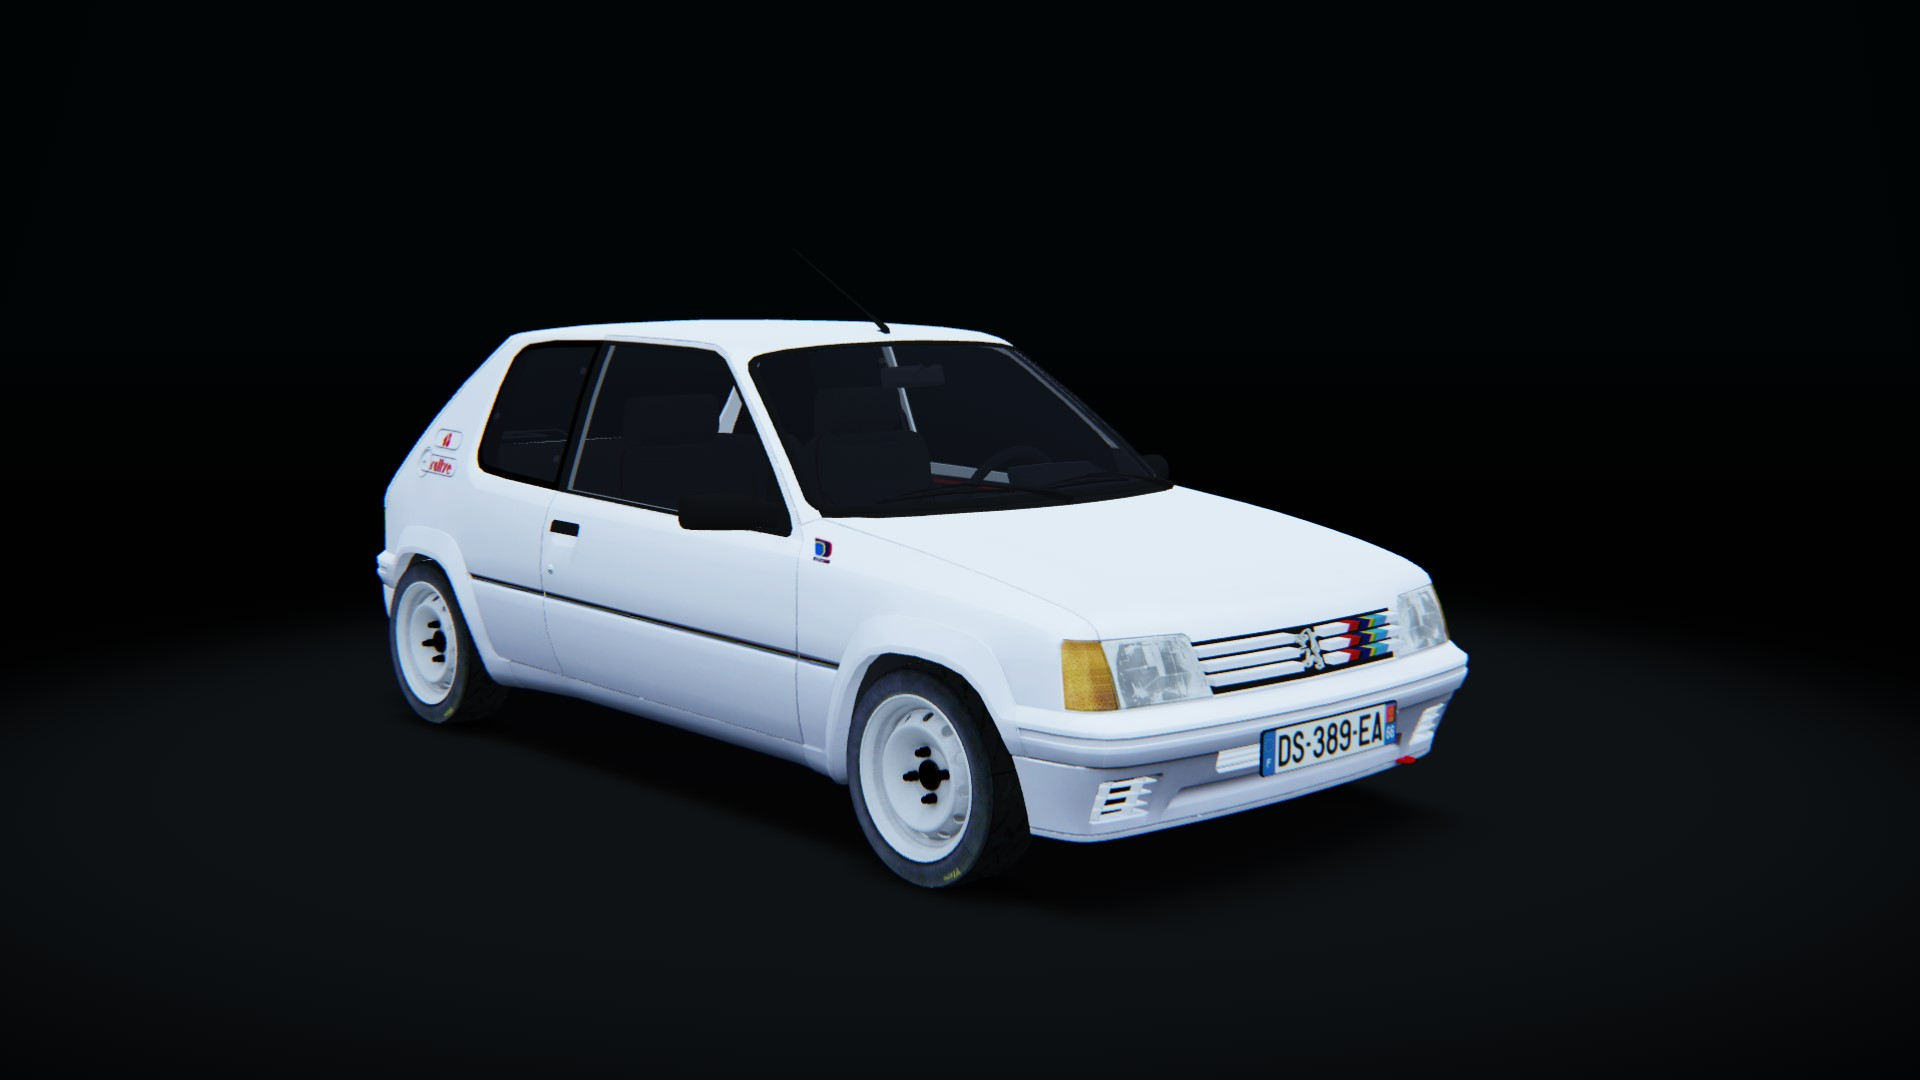 peugeot 205 rallye step1 peugeot car detail assetto corsa database. Black Bedroom Furniture Sets. Home Design Ideas